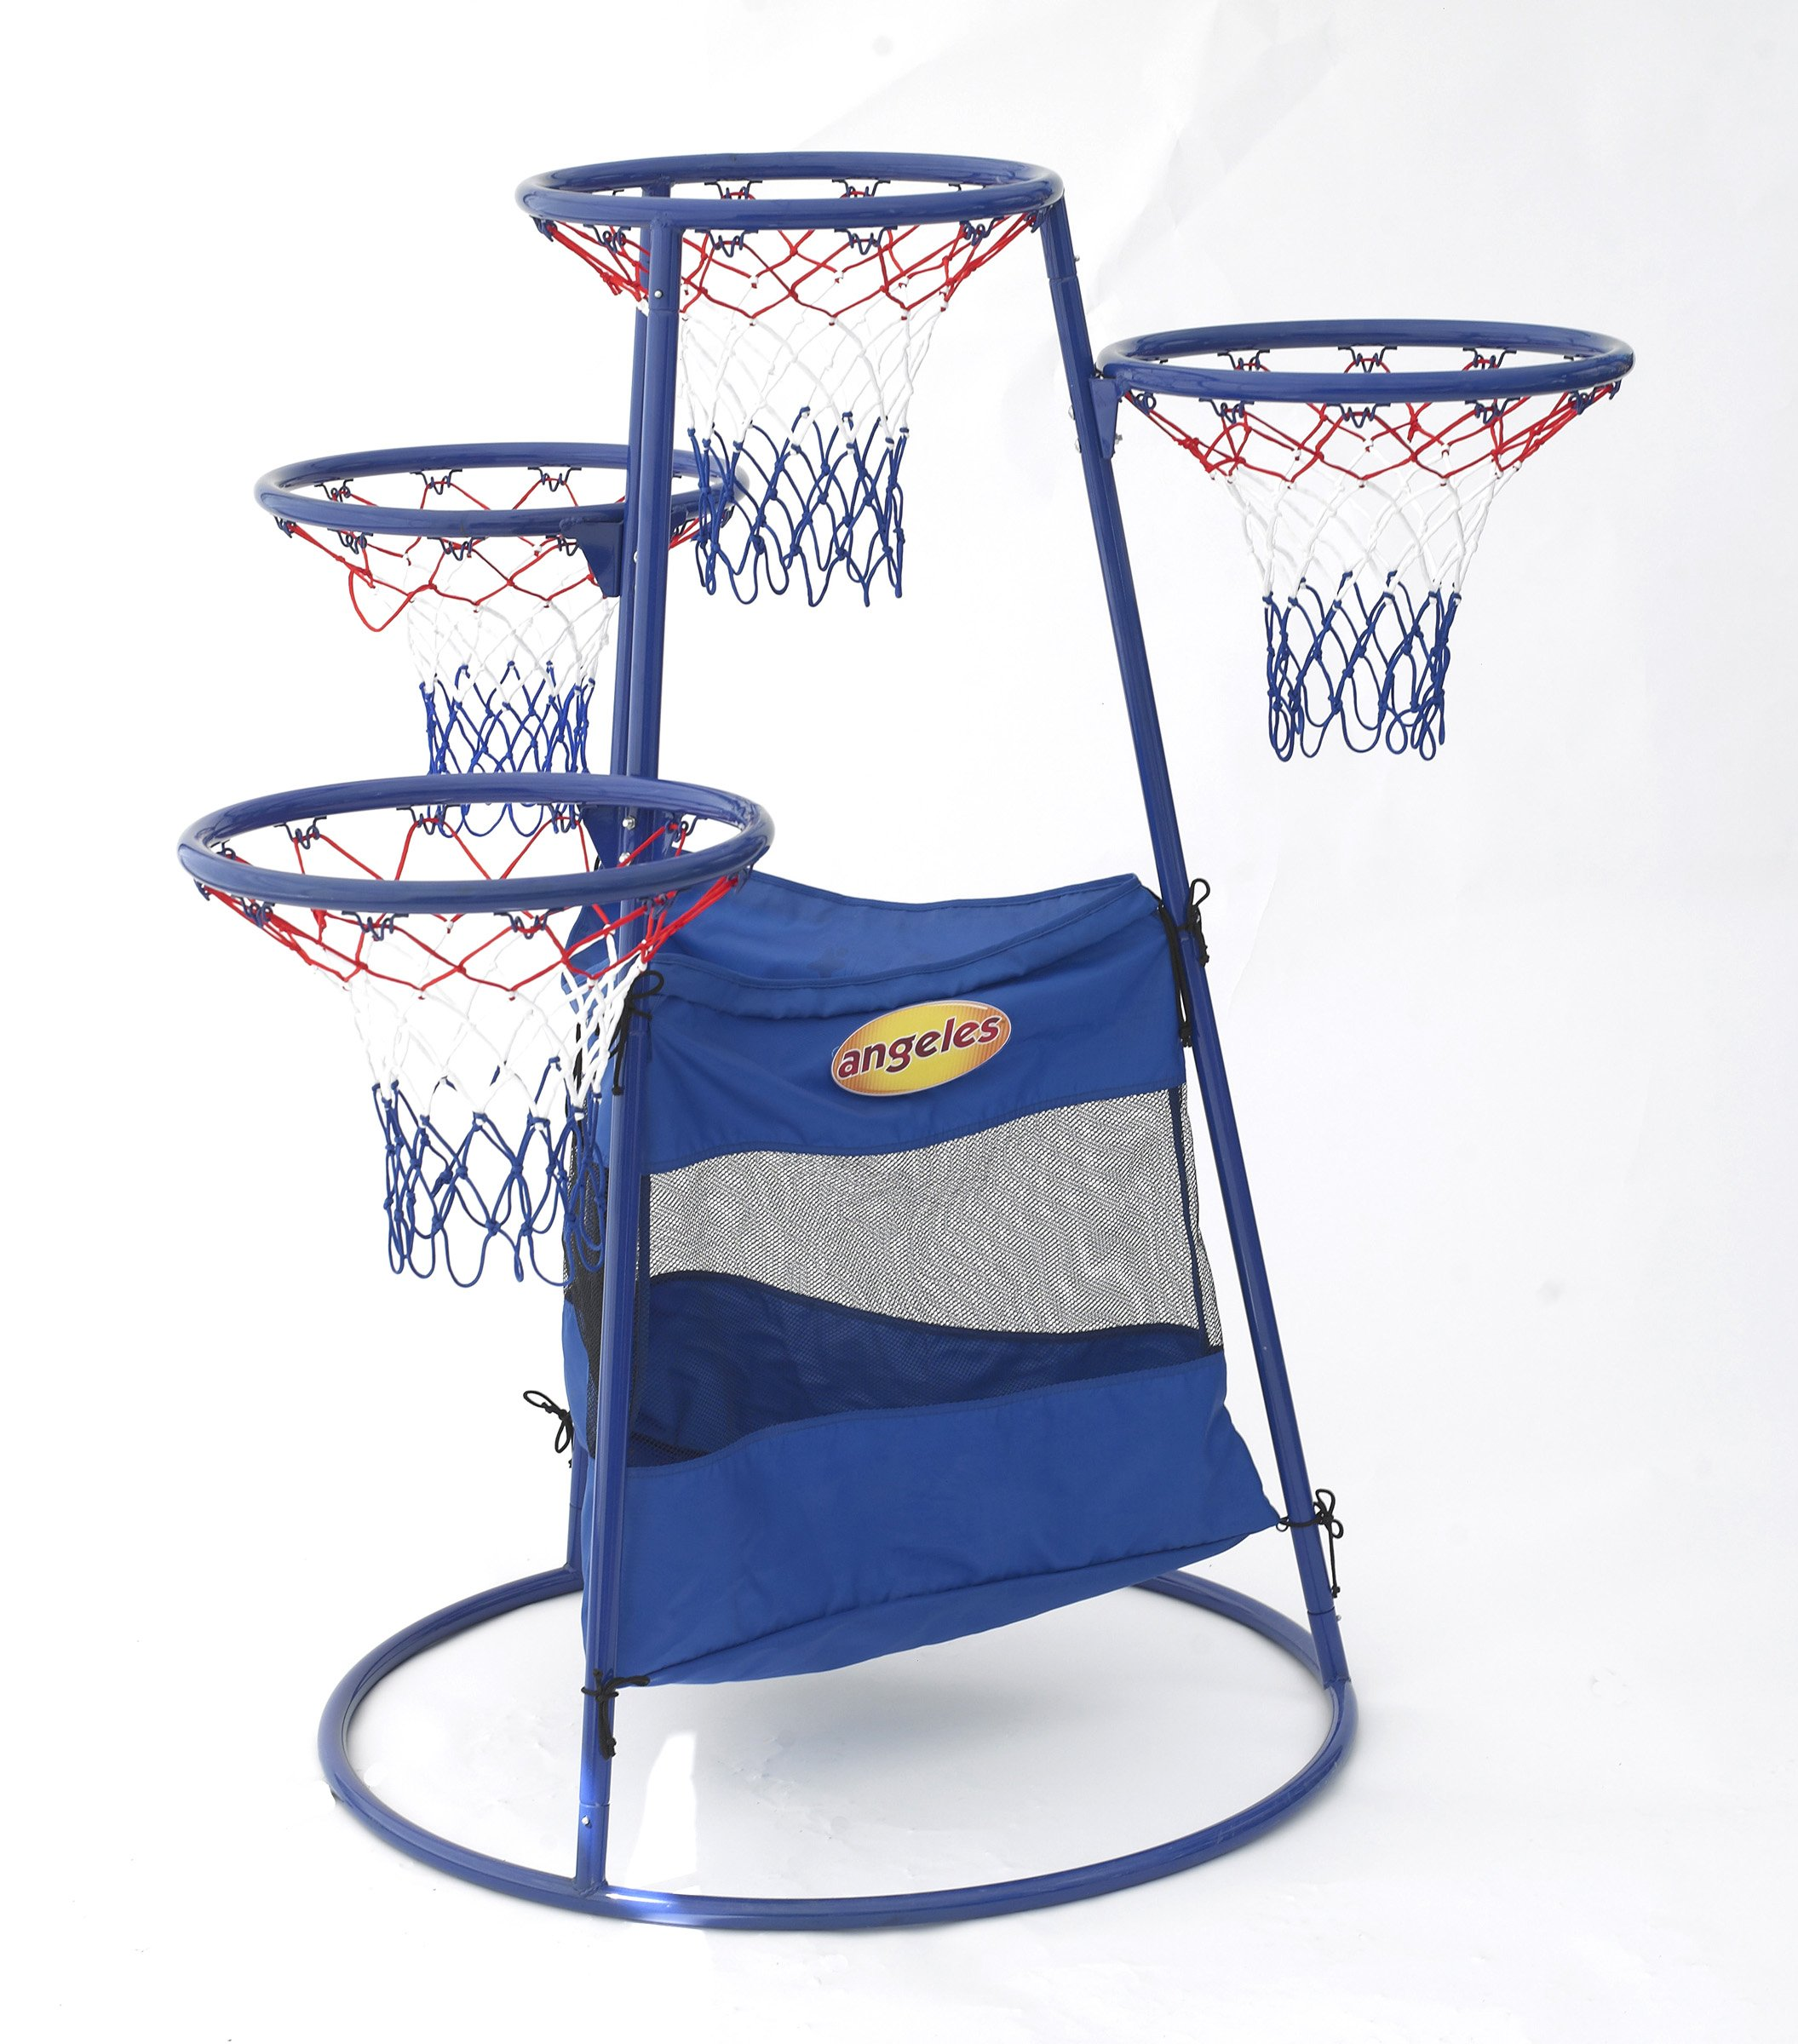 Angeles 4 Rings Basketball Stand with Storage Bag for Kids Active Play Toy (48 x 36 x 54 in) by Angeles (Image #3)